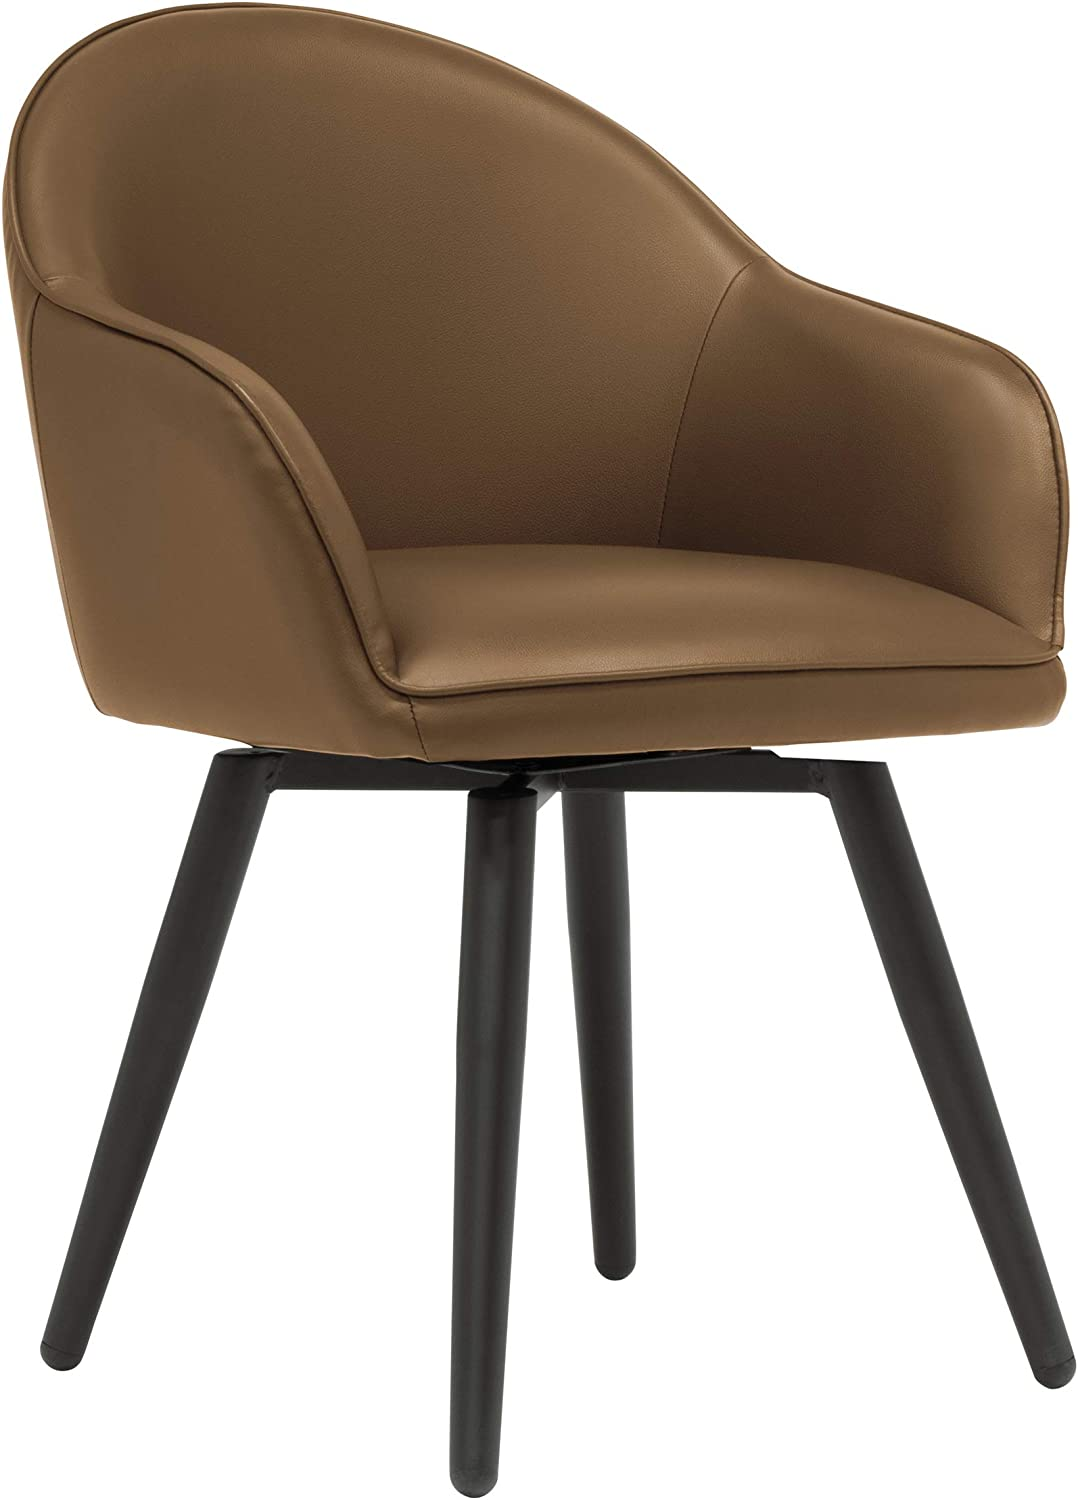 Studio Designs Home Dome Swivel Accent Chair with Arms, Office/Dining/Guest, Black/Caramel Brown Faux Leather